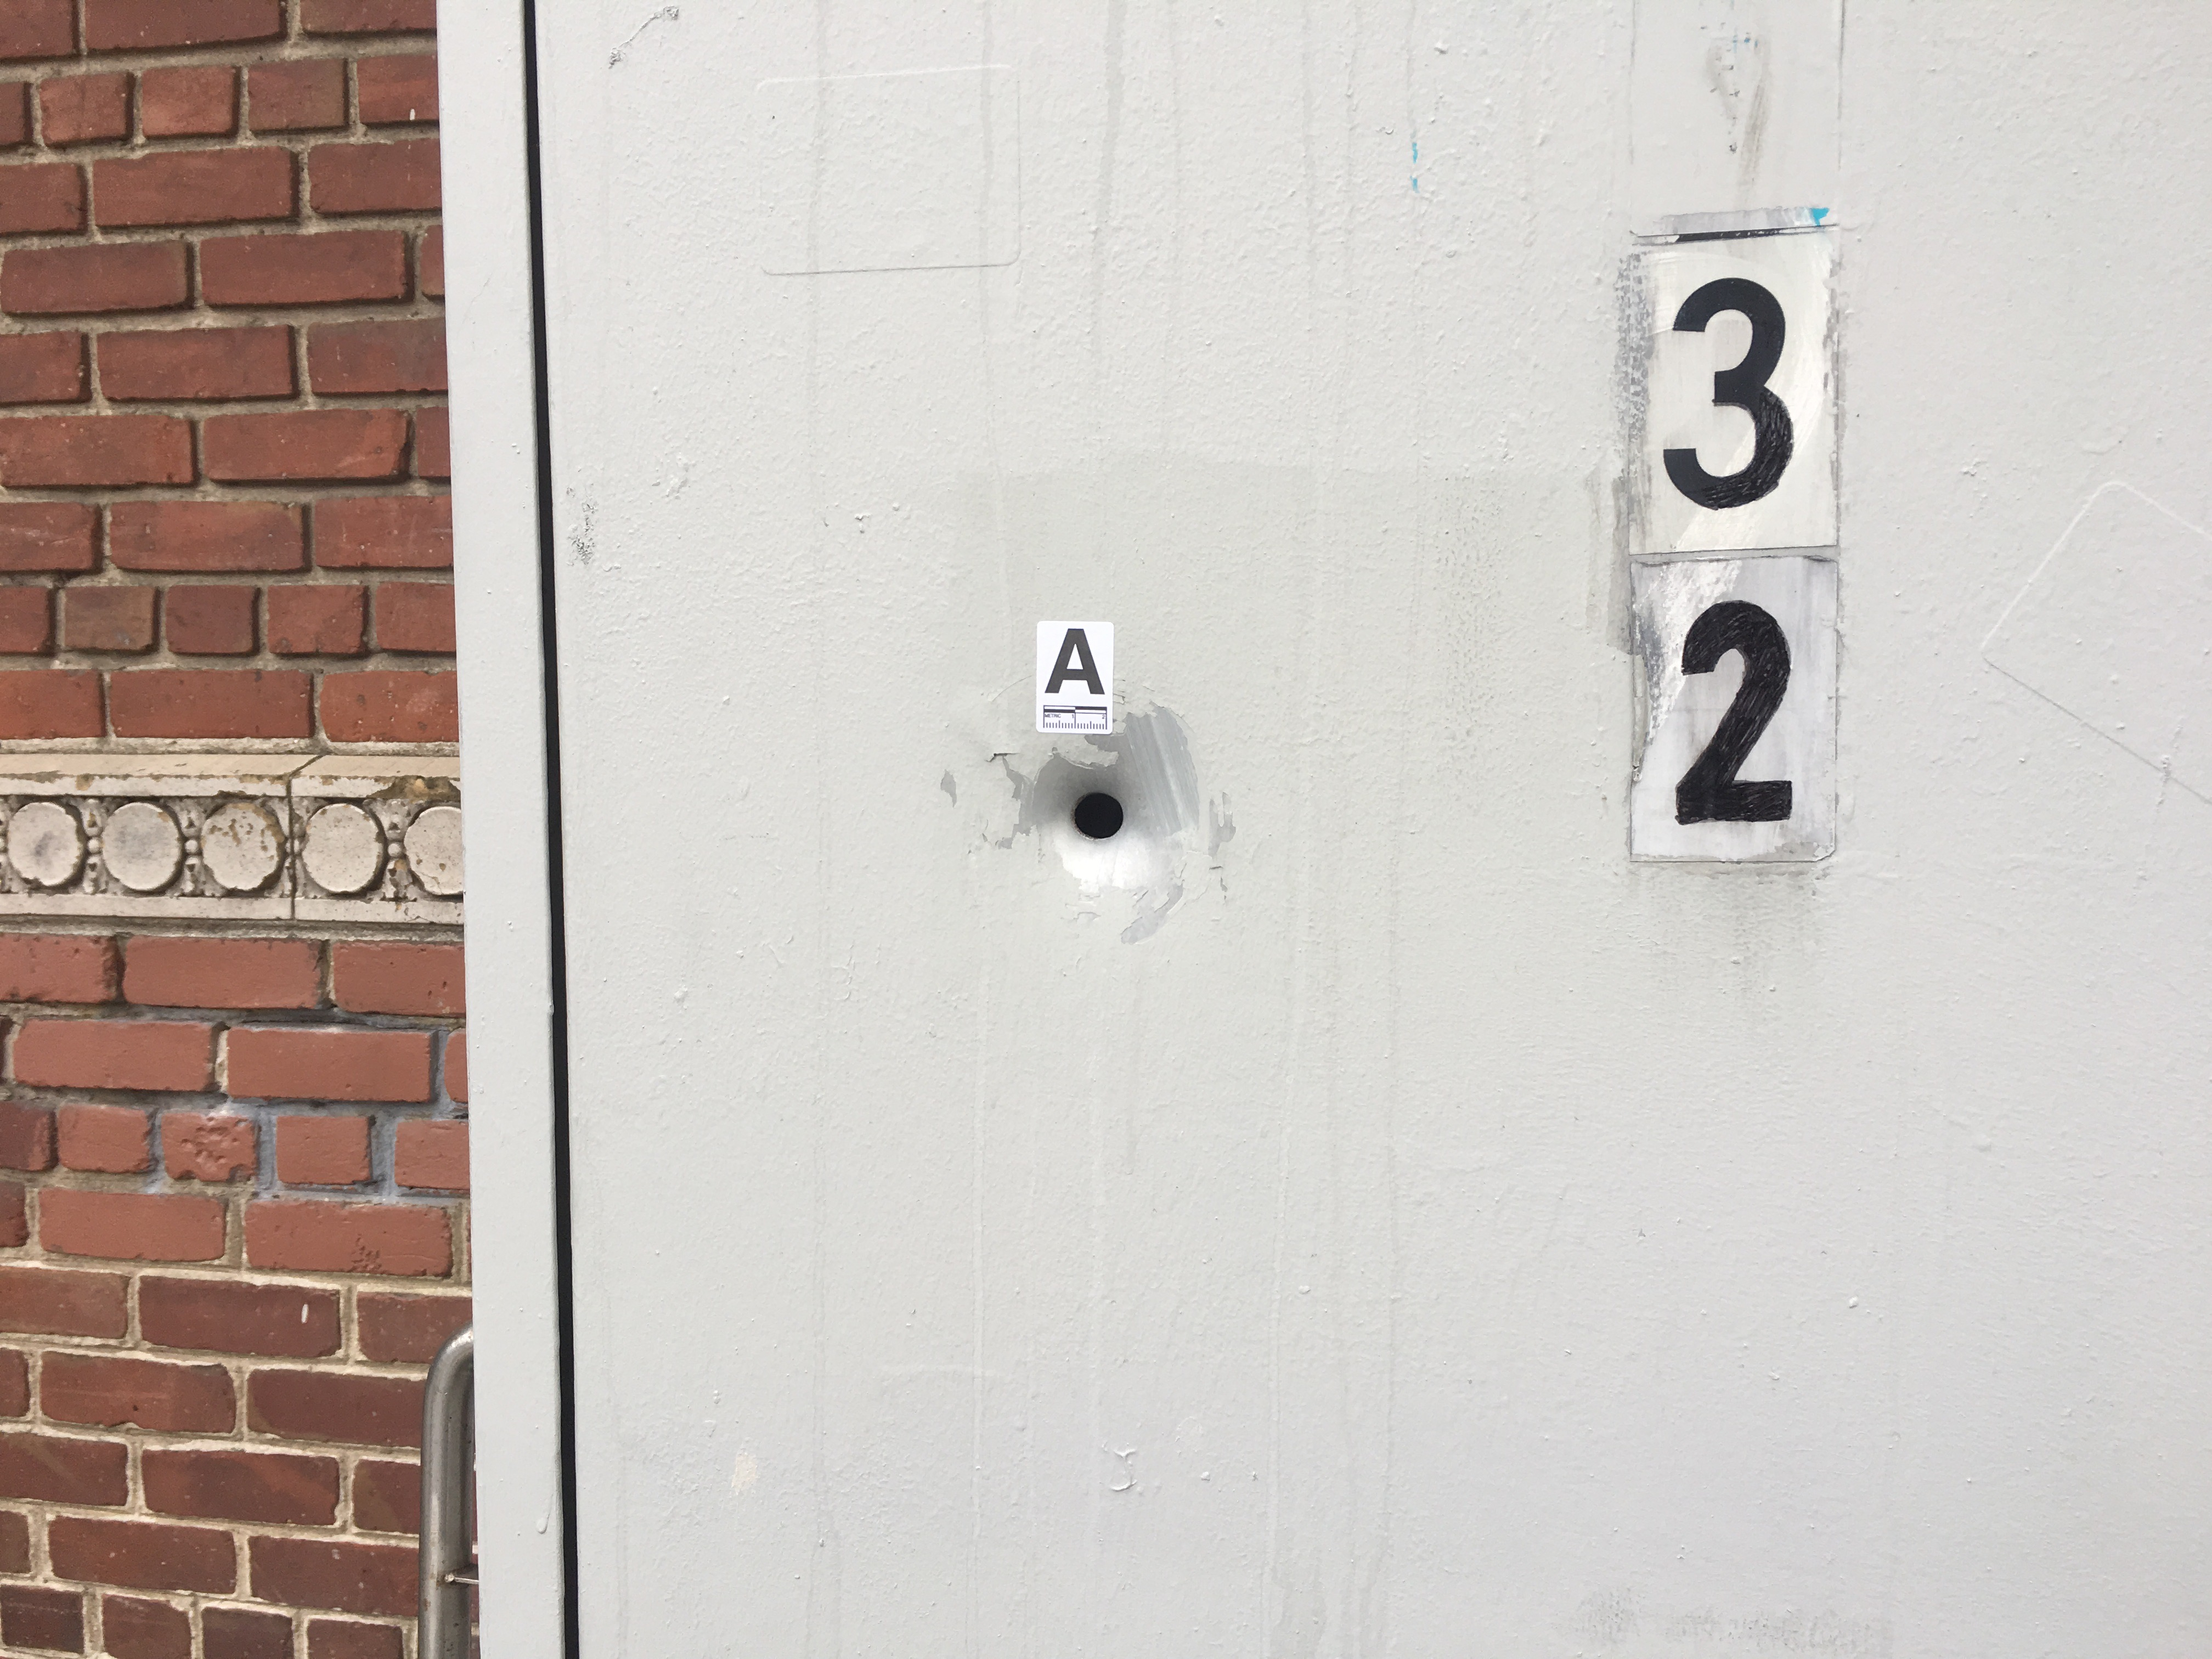 A bullet hole in a utility box at the scene of a shooting at 25th and Vermont streets on Wednesday, November 30, 2016. Photo by Joe Rivano Barros.